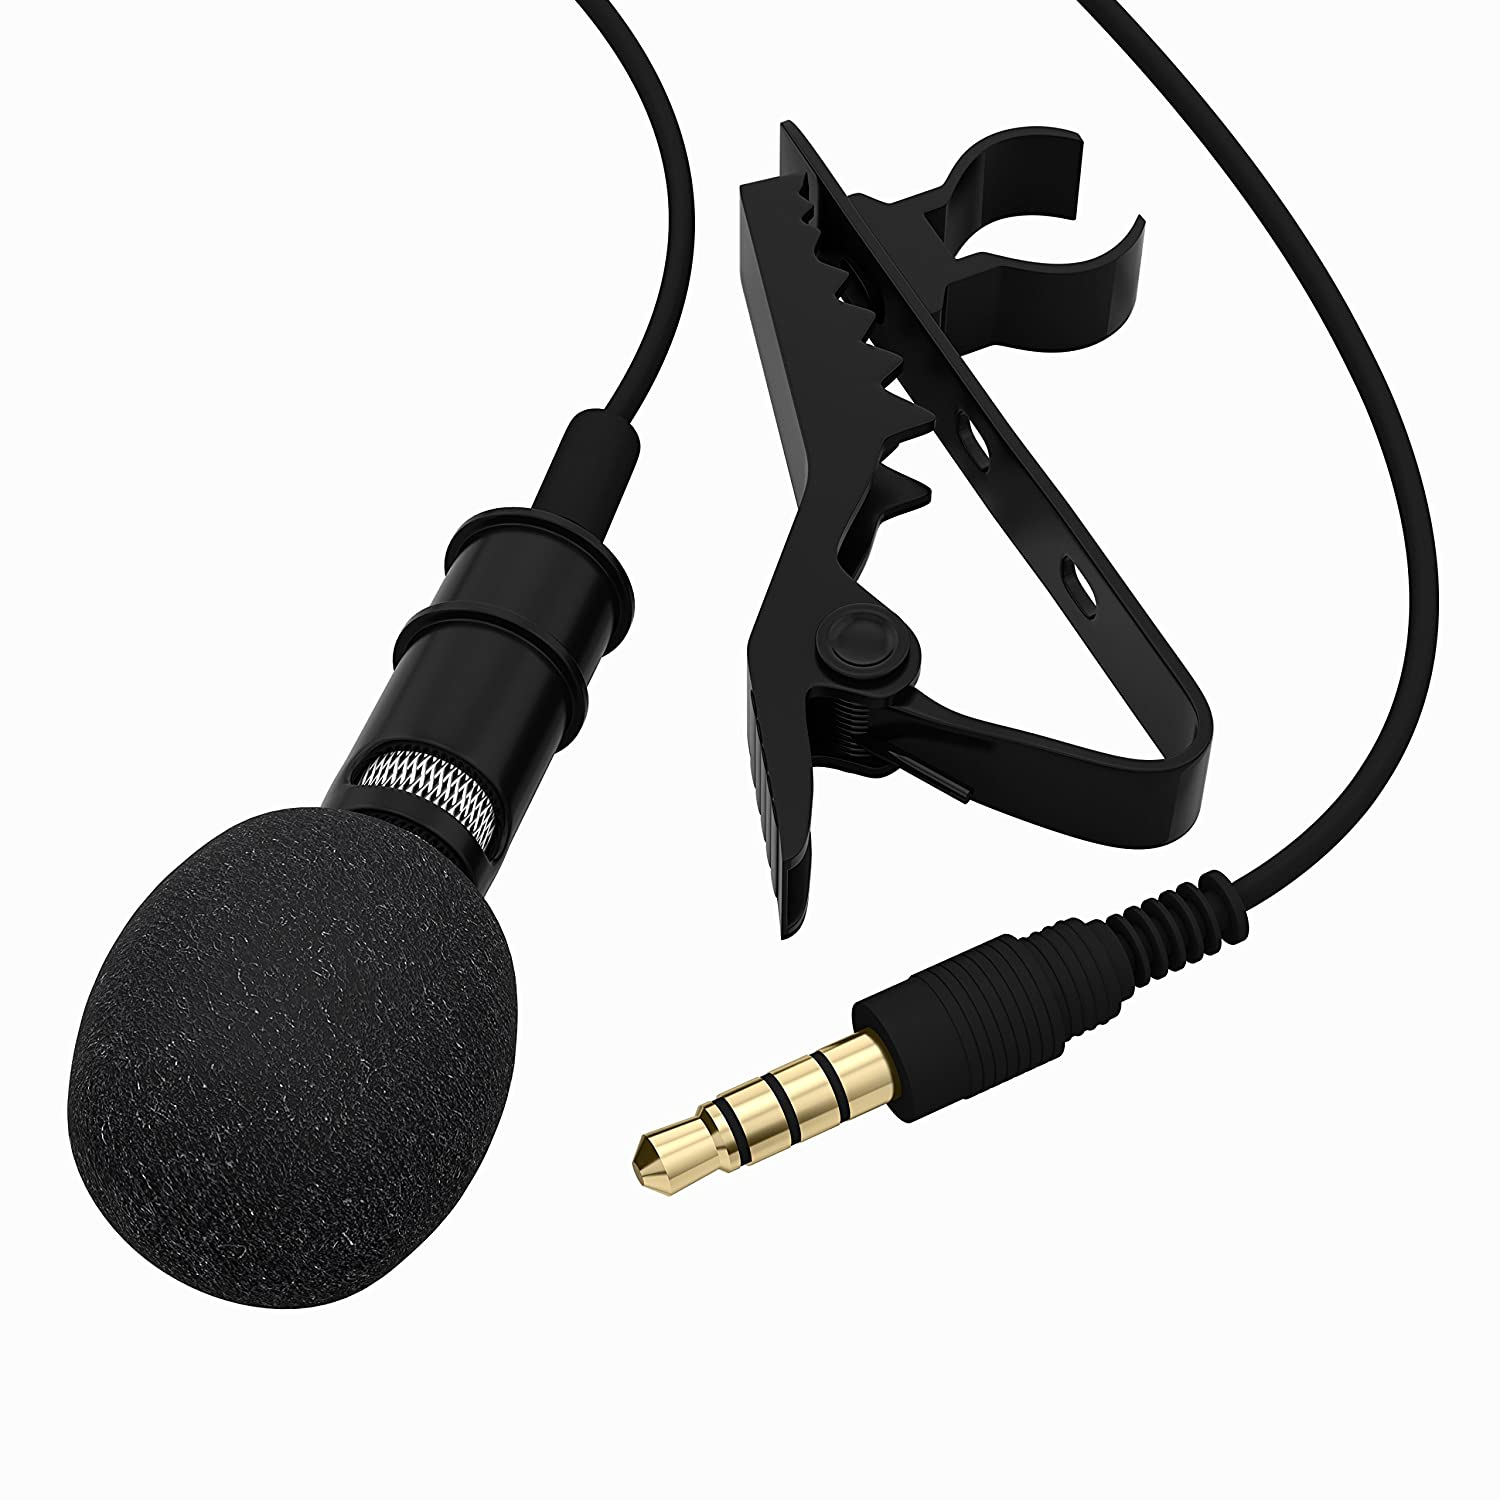 Miracle sound deluxe - lapel microphone for youtube